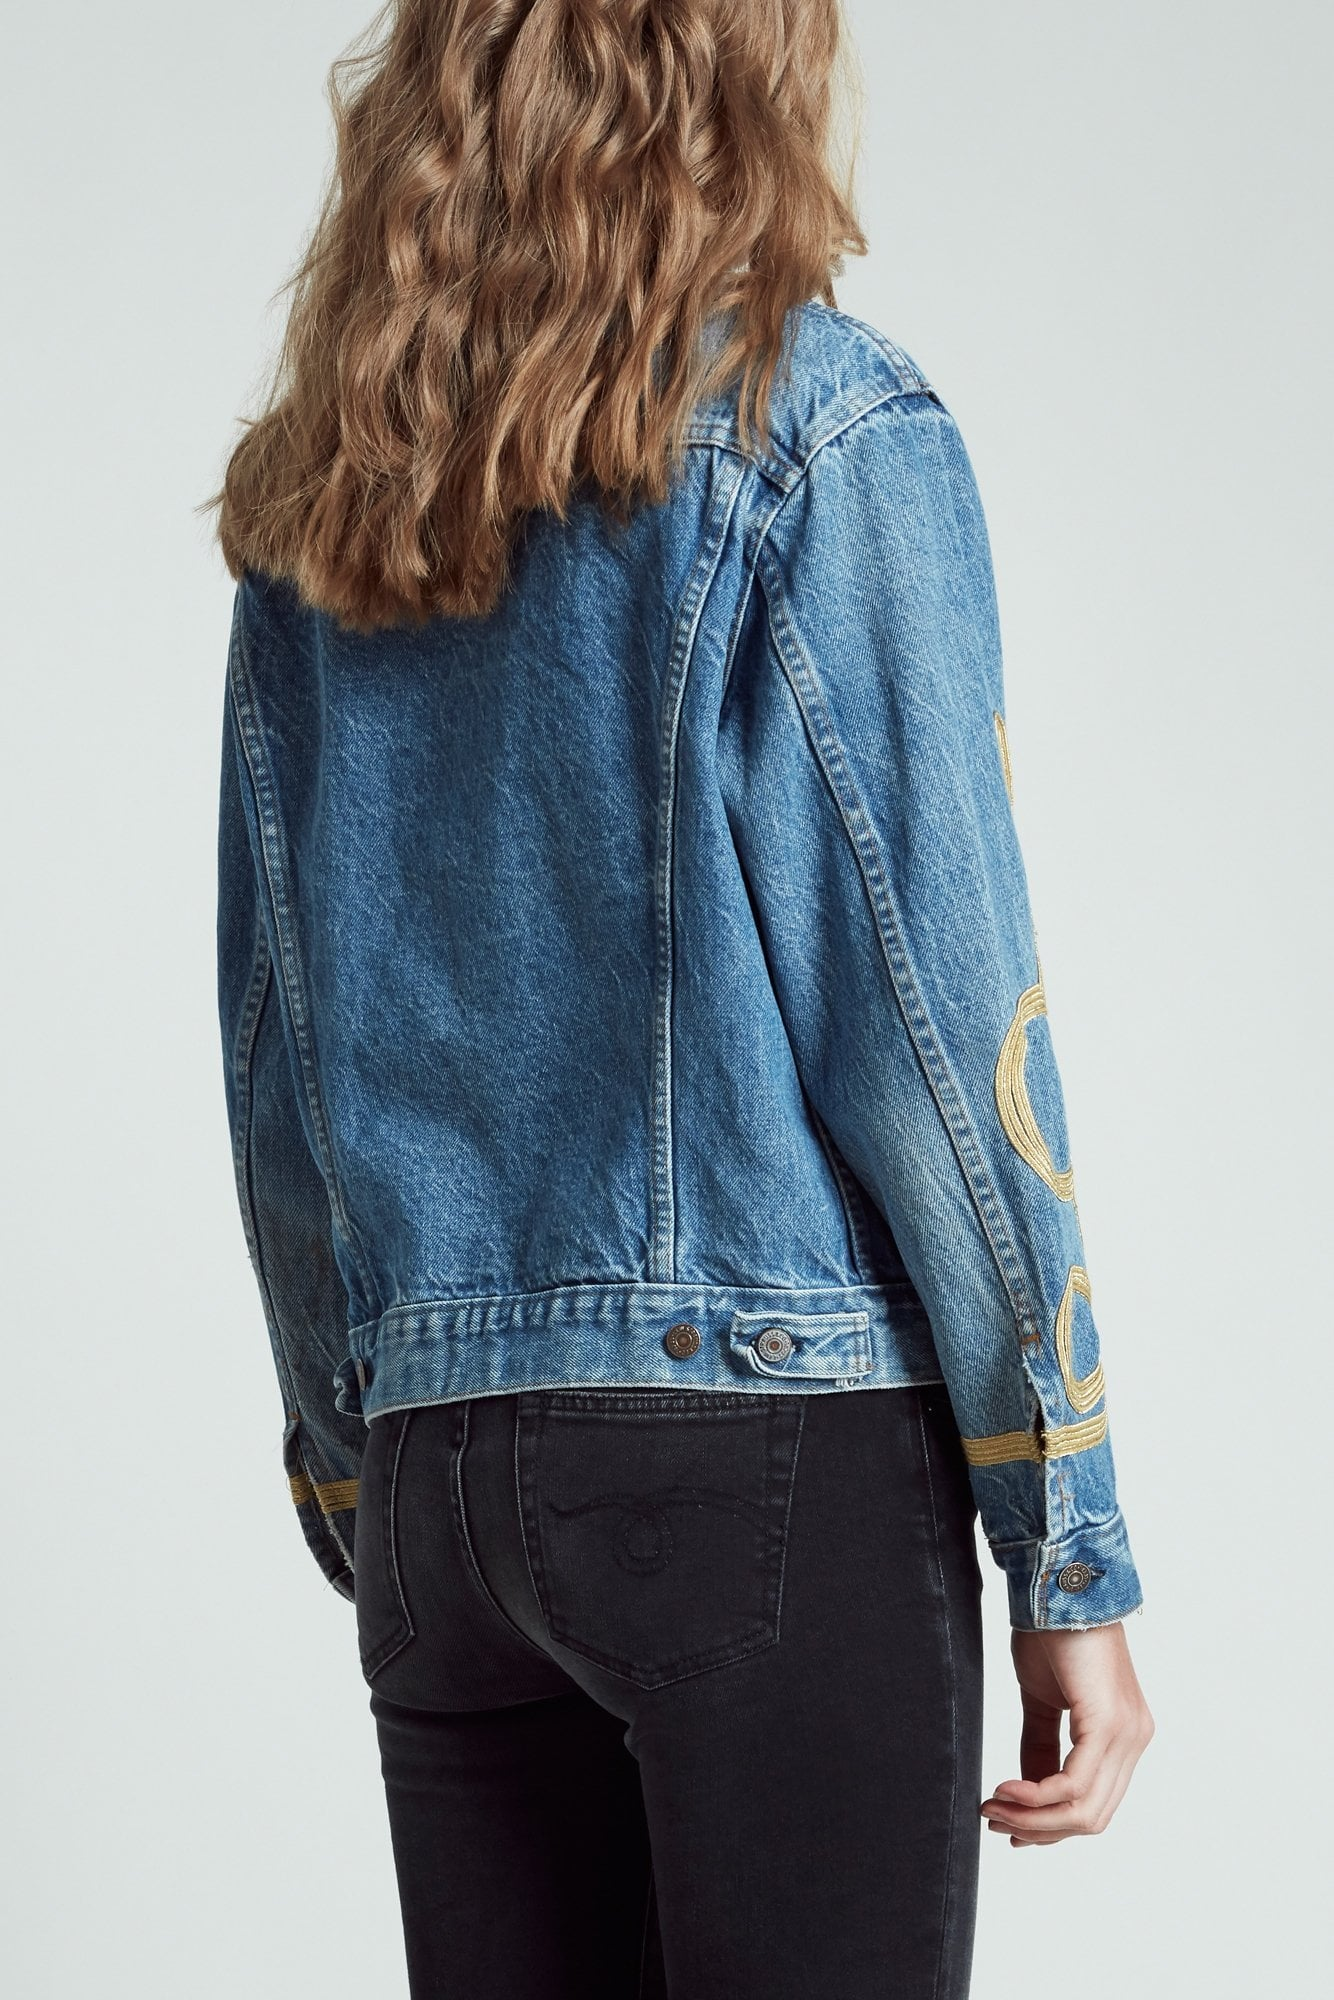 Refurbished Trucker Jacket with Embroidery